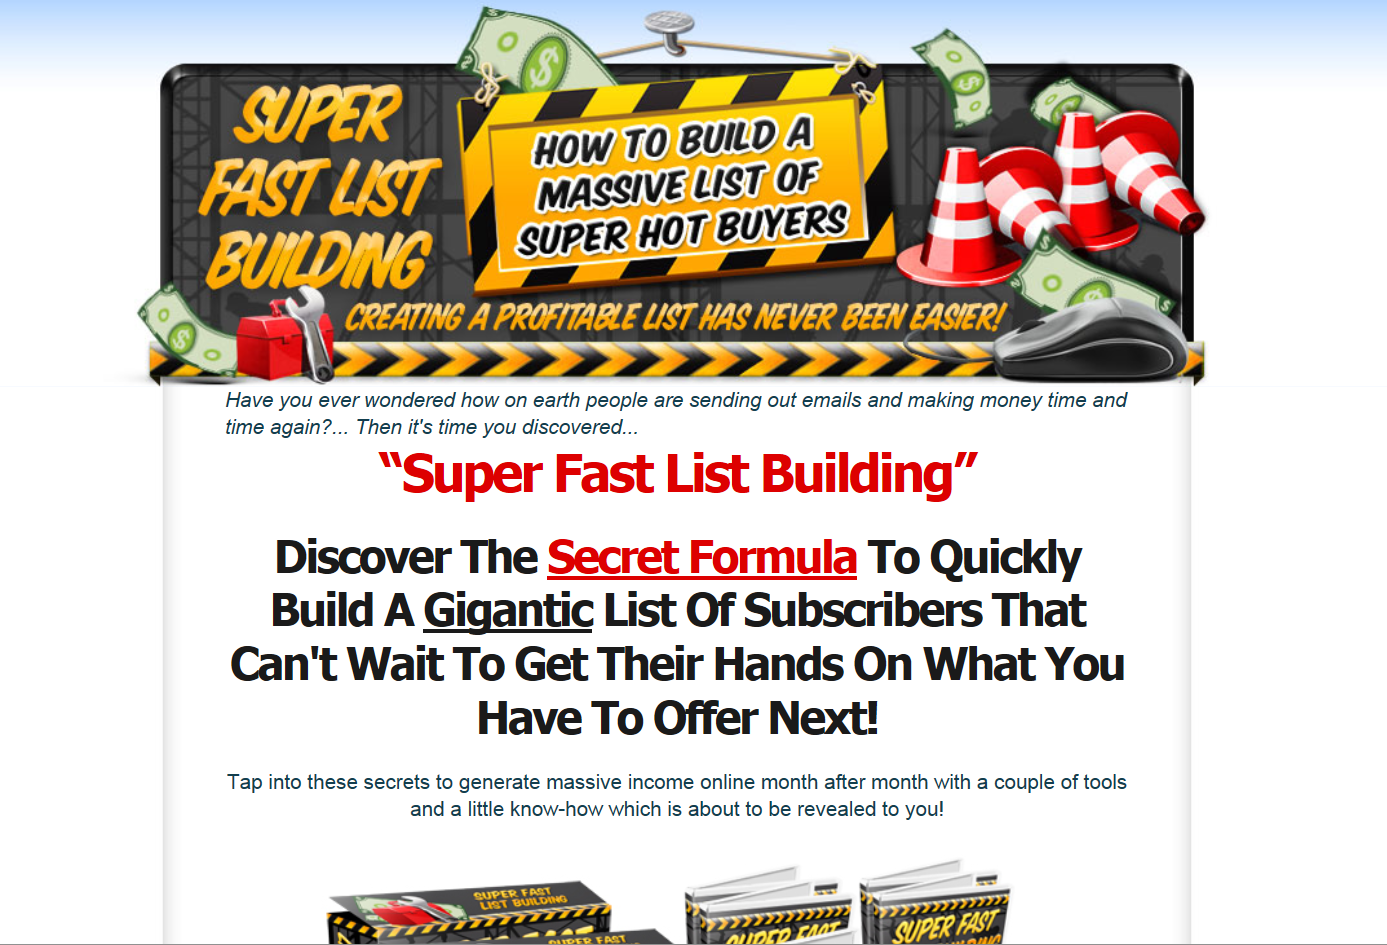 Super Fast List Building